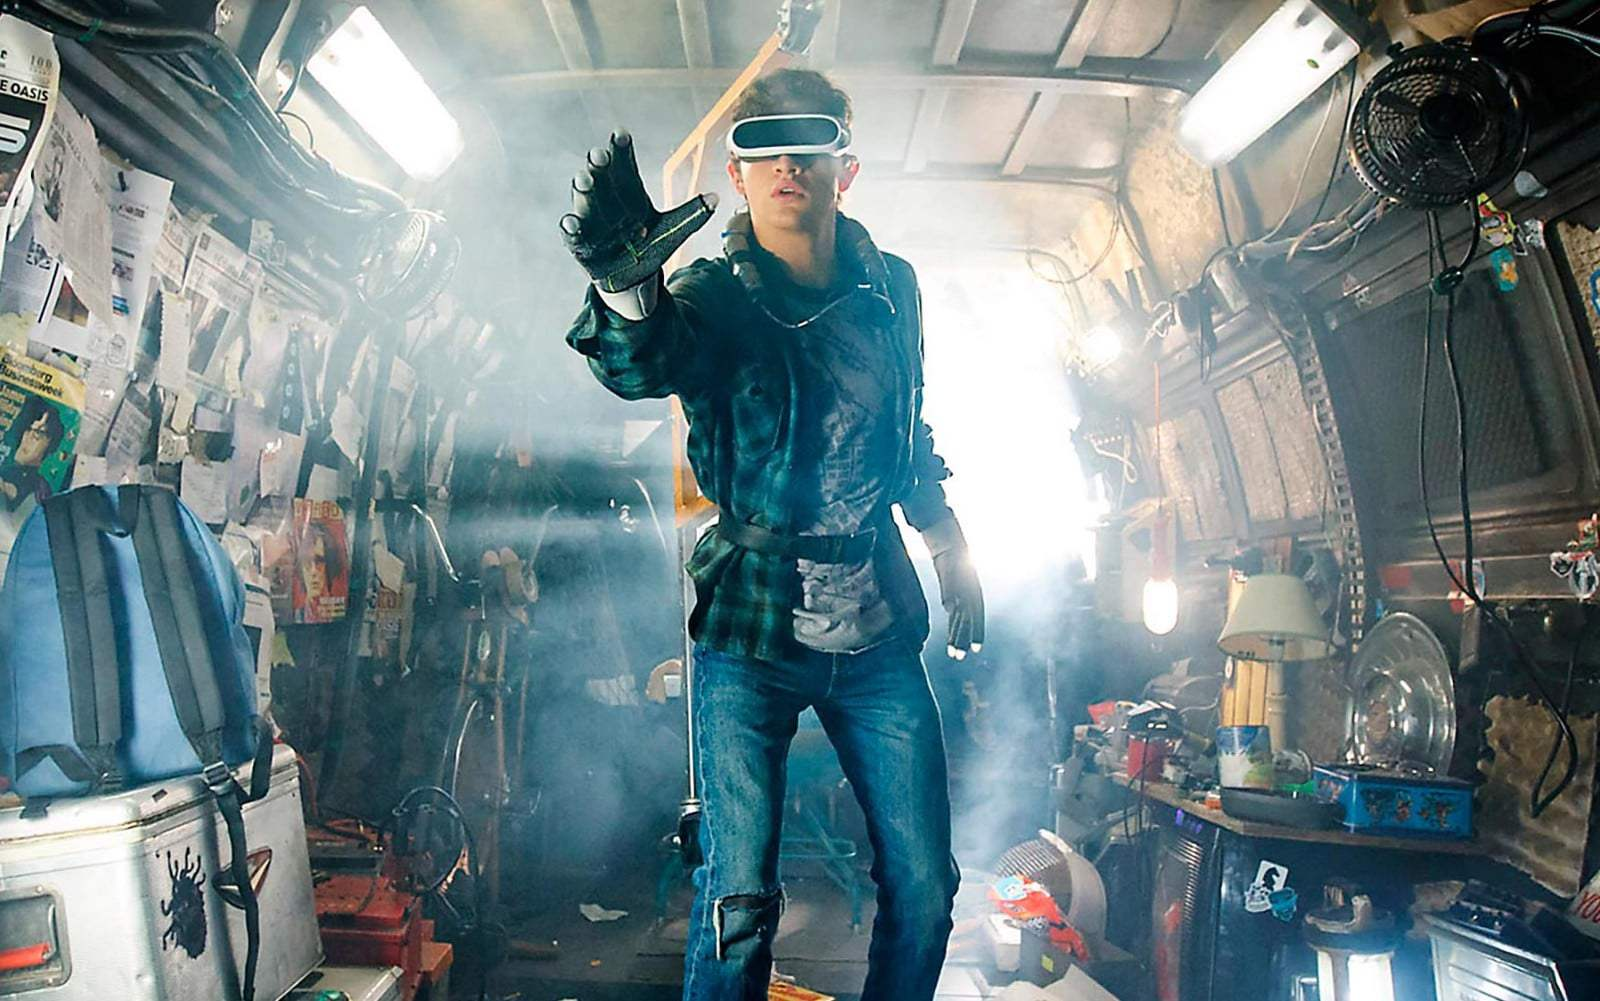 Wade Watts in Real Player One